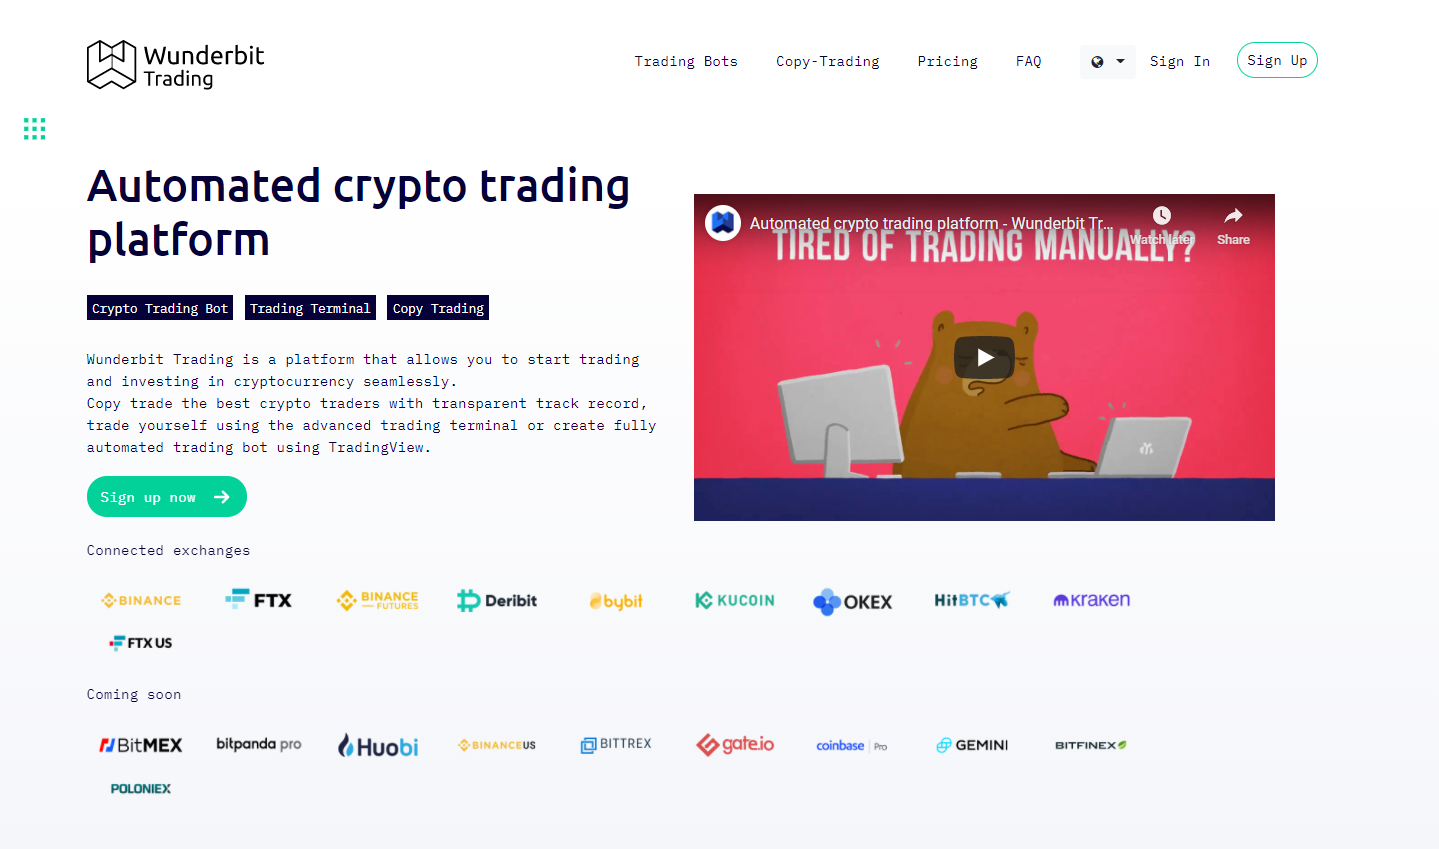 Wunderbit is another advanced cryptocurrency focused social copy trading platform.